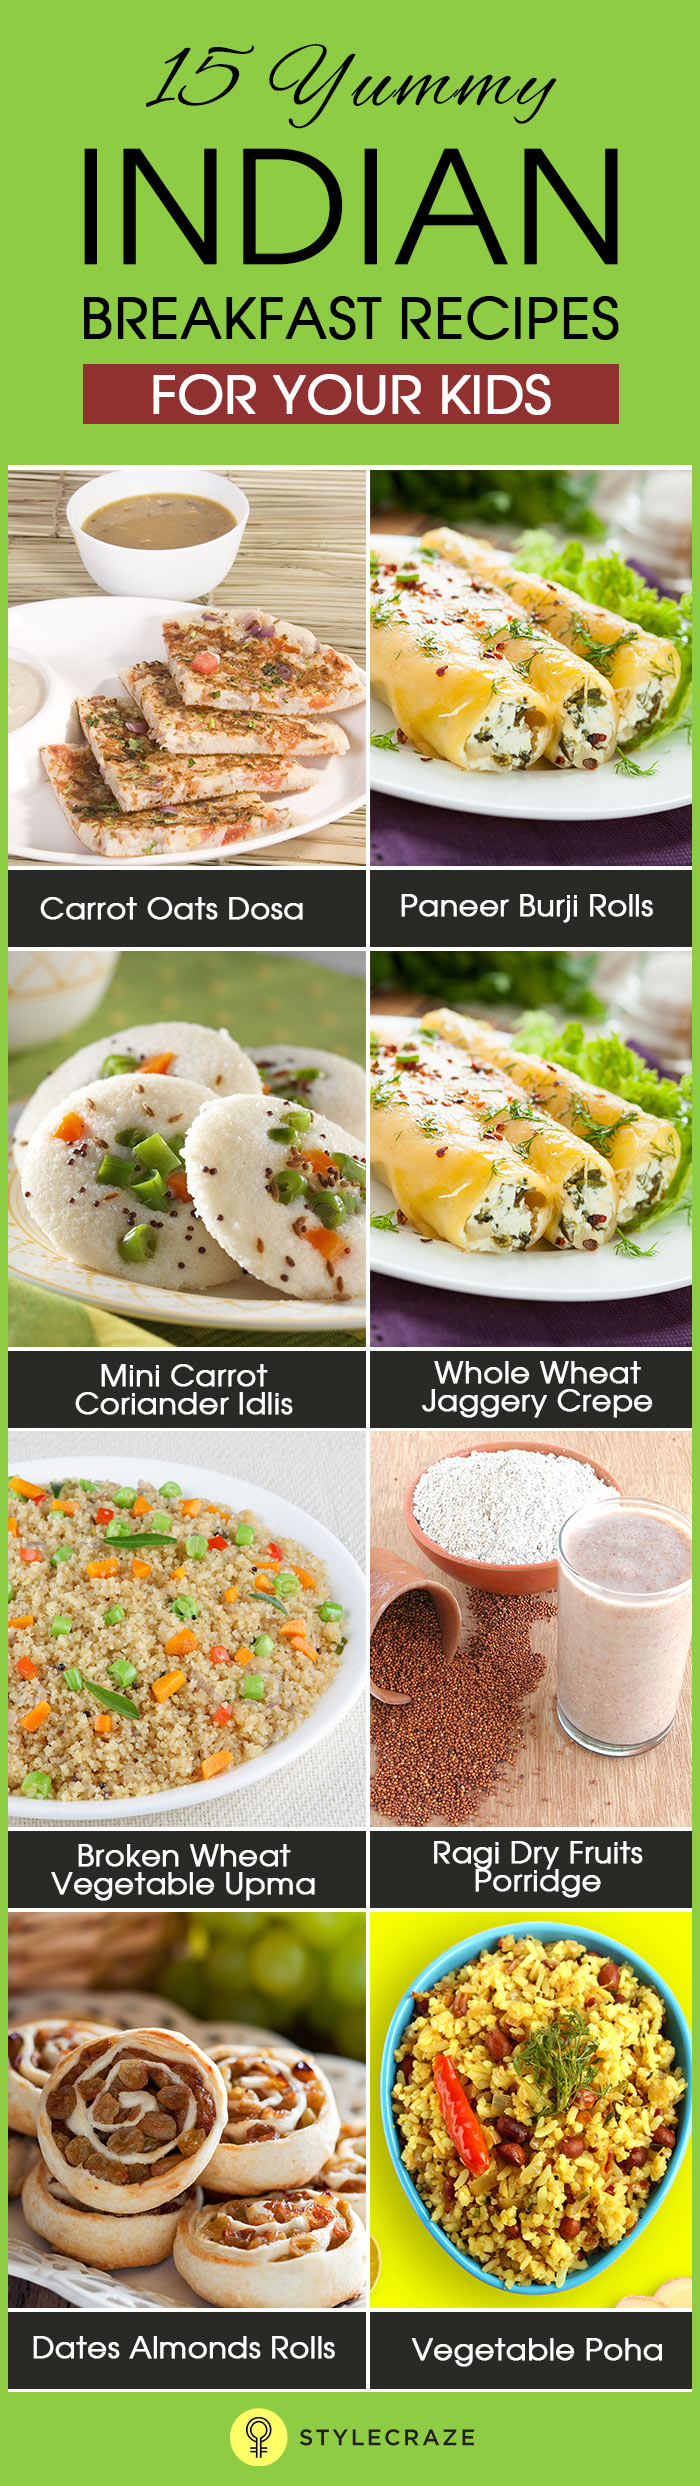 Top 15 Yummy Indian Breakfast Recipes For Your Kids pictures